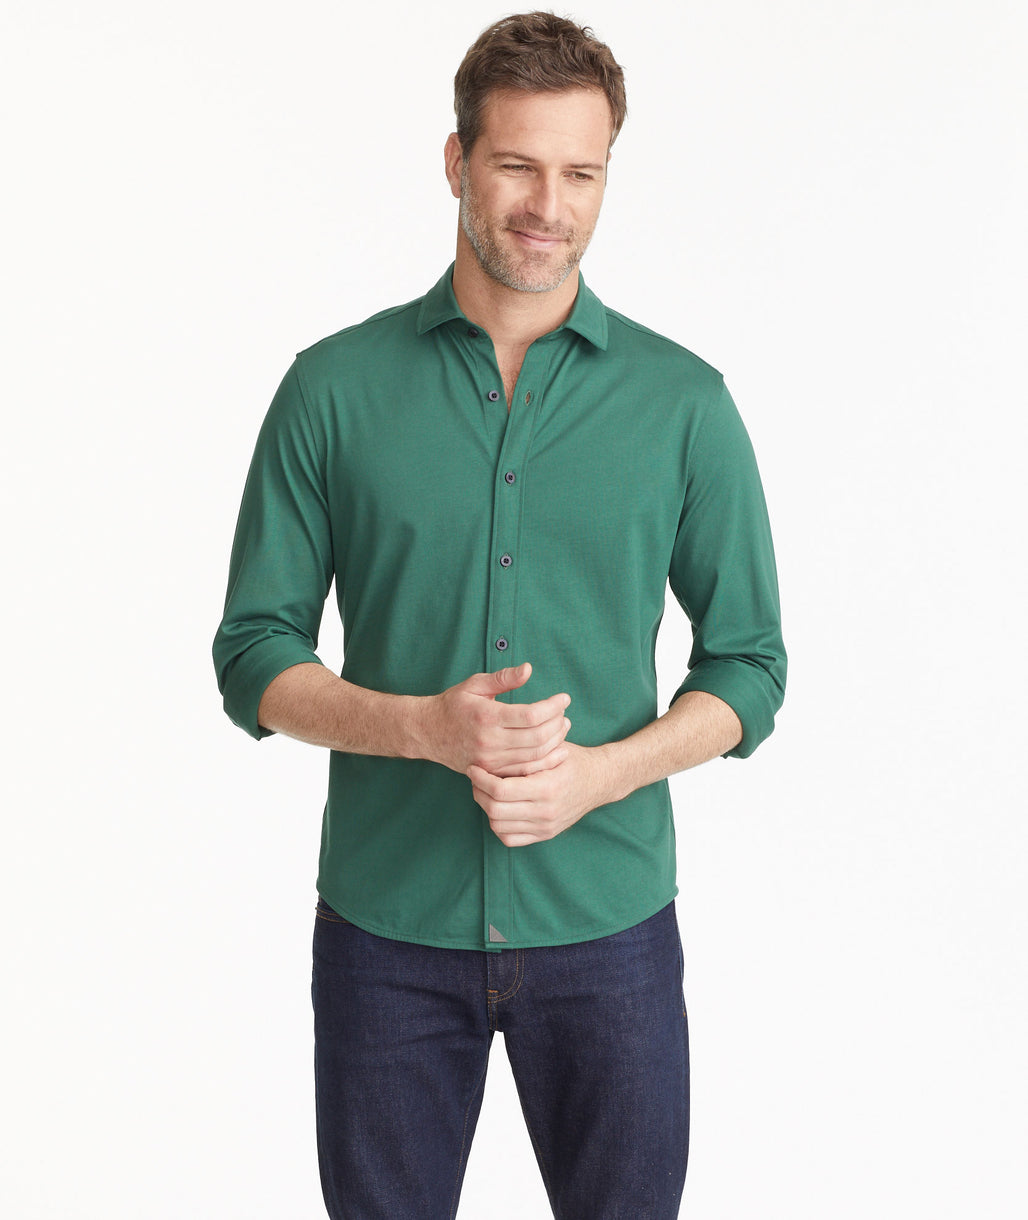 Model wearing a Mid Green Luxe Tee Hybrid Shirt